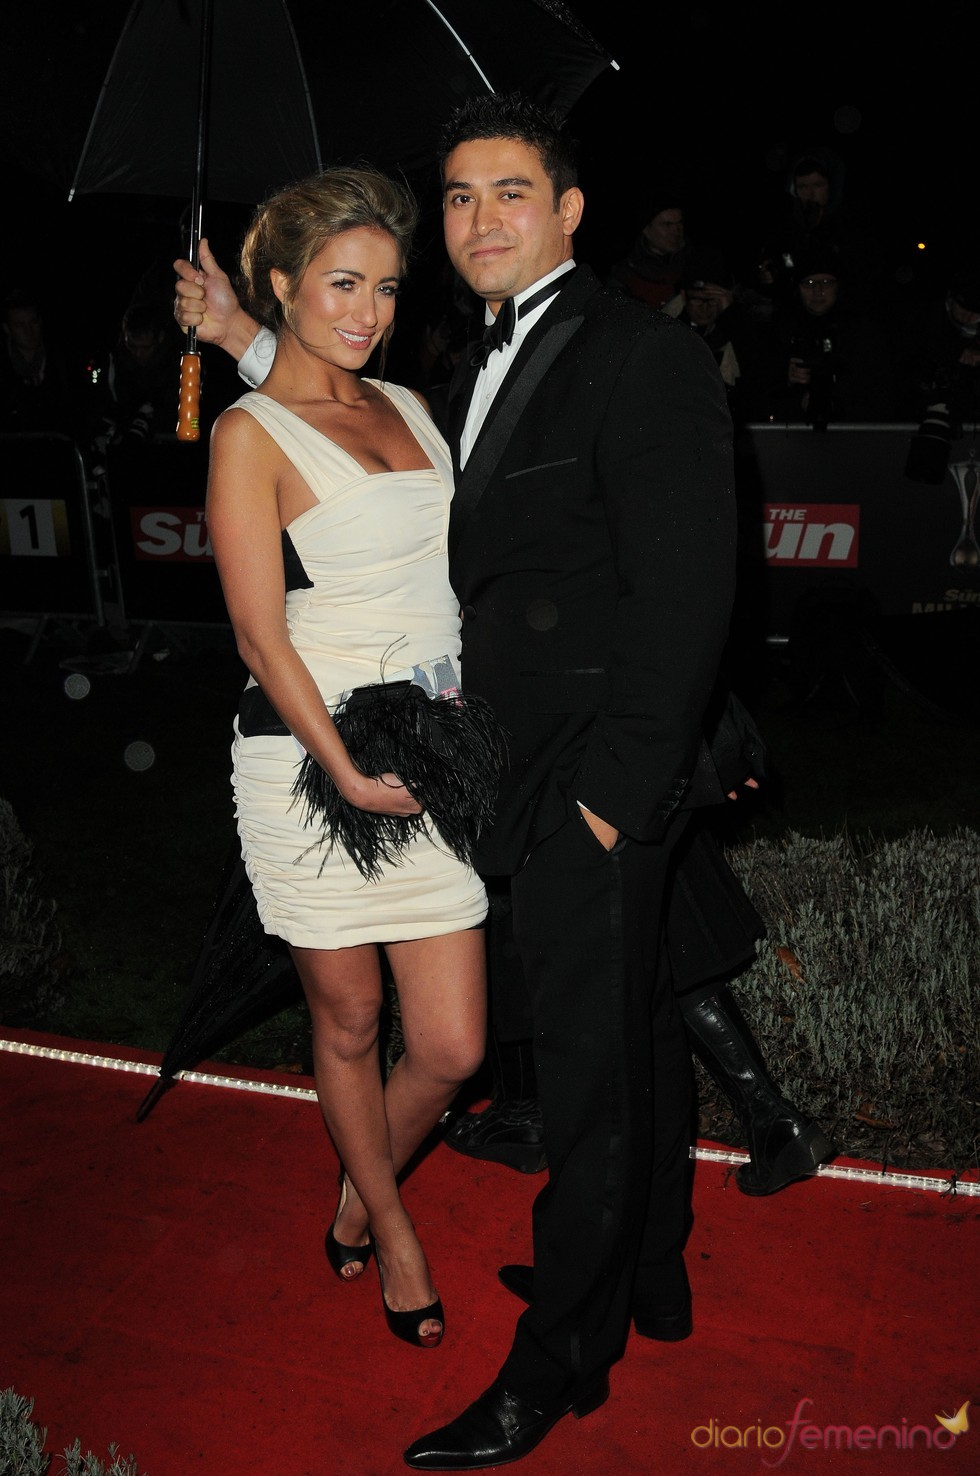 Chantelle Houghton en los Military Adwards 2010